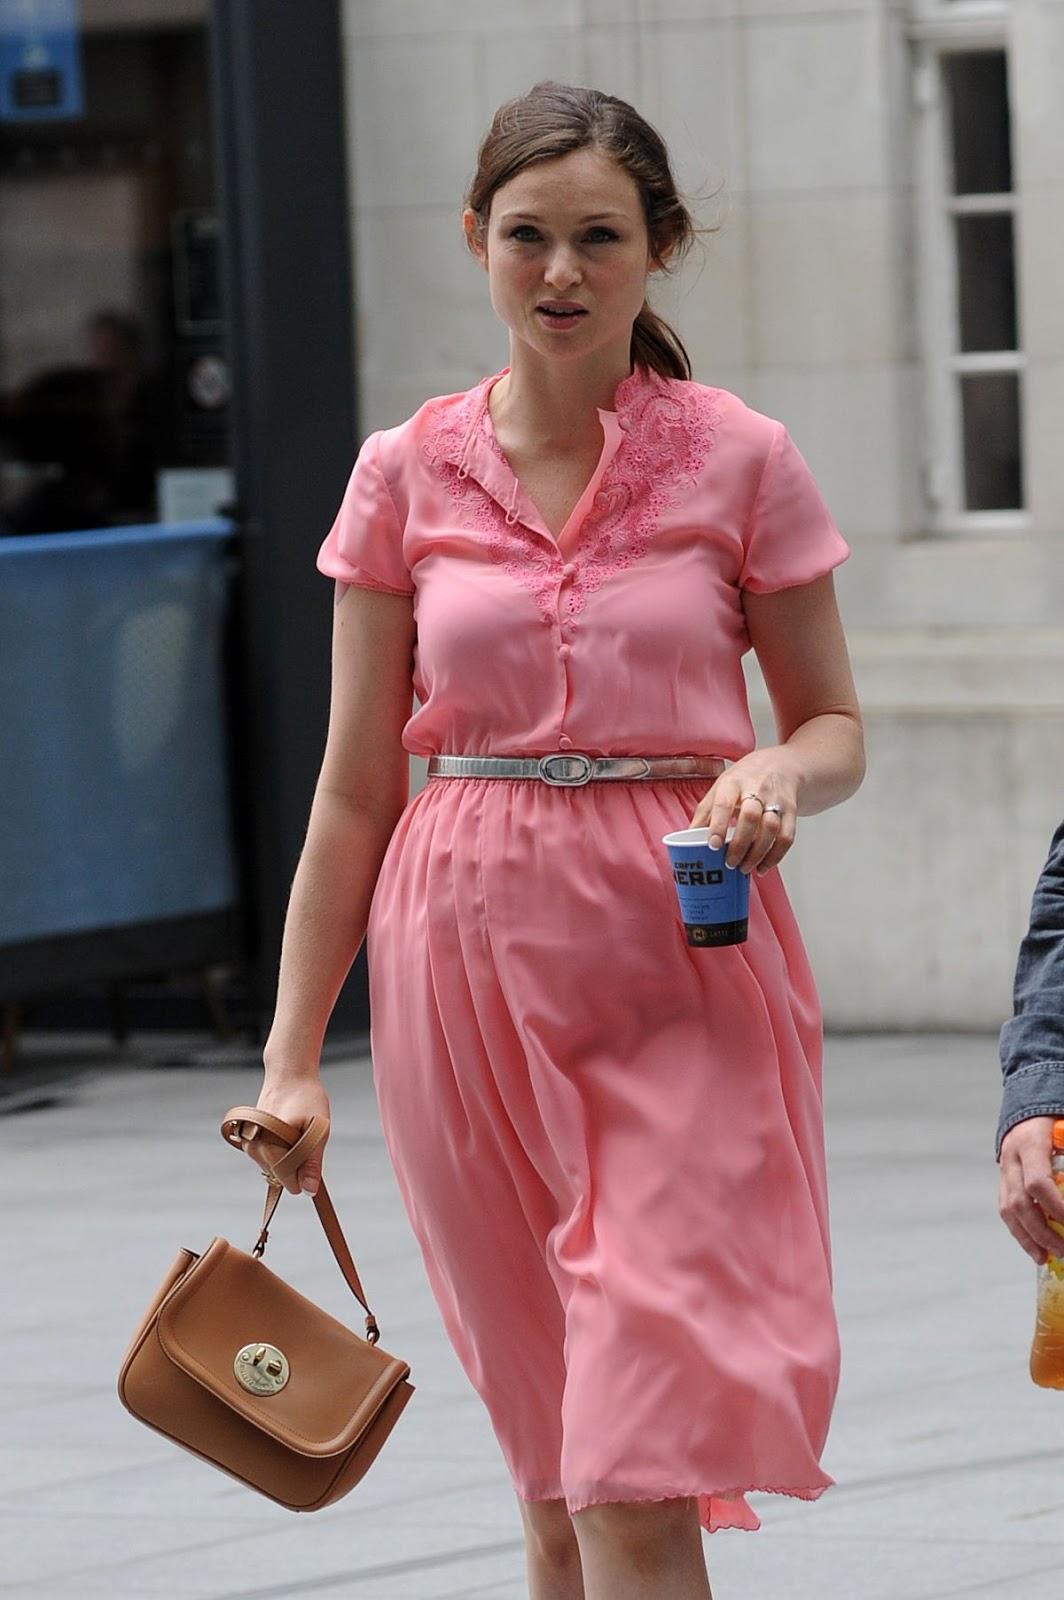 HQ Photos of Sophie Ellis Bextor arrives at BBC Radio 1 Studio in London